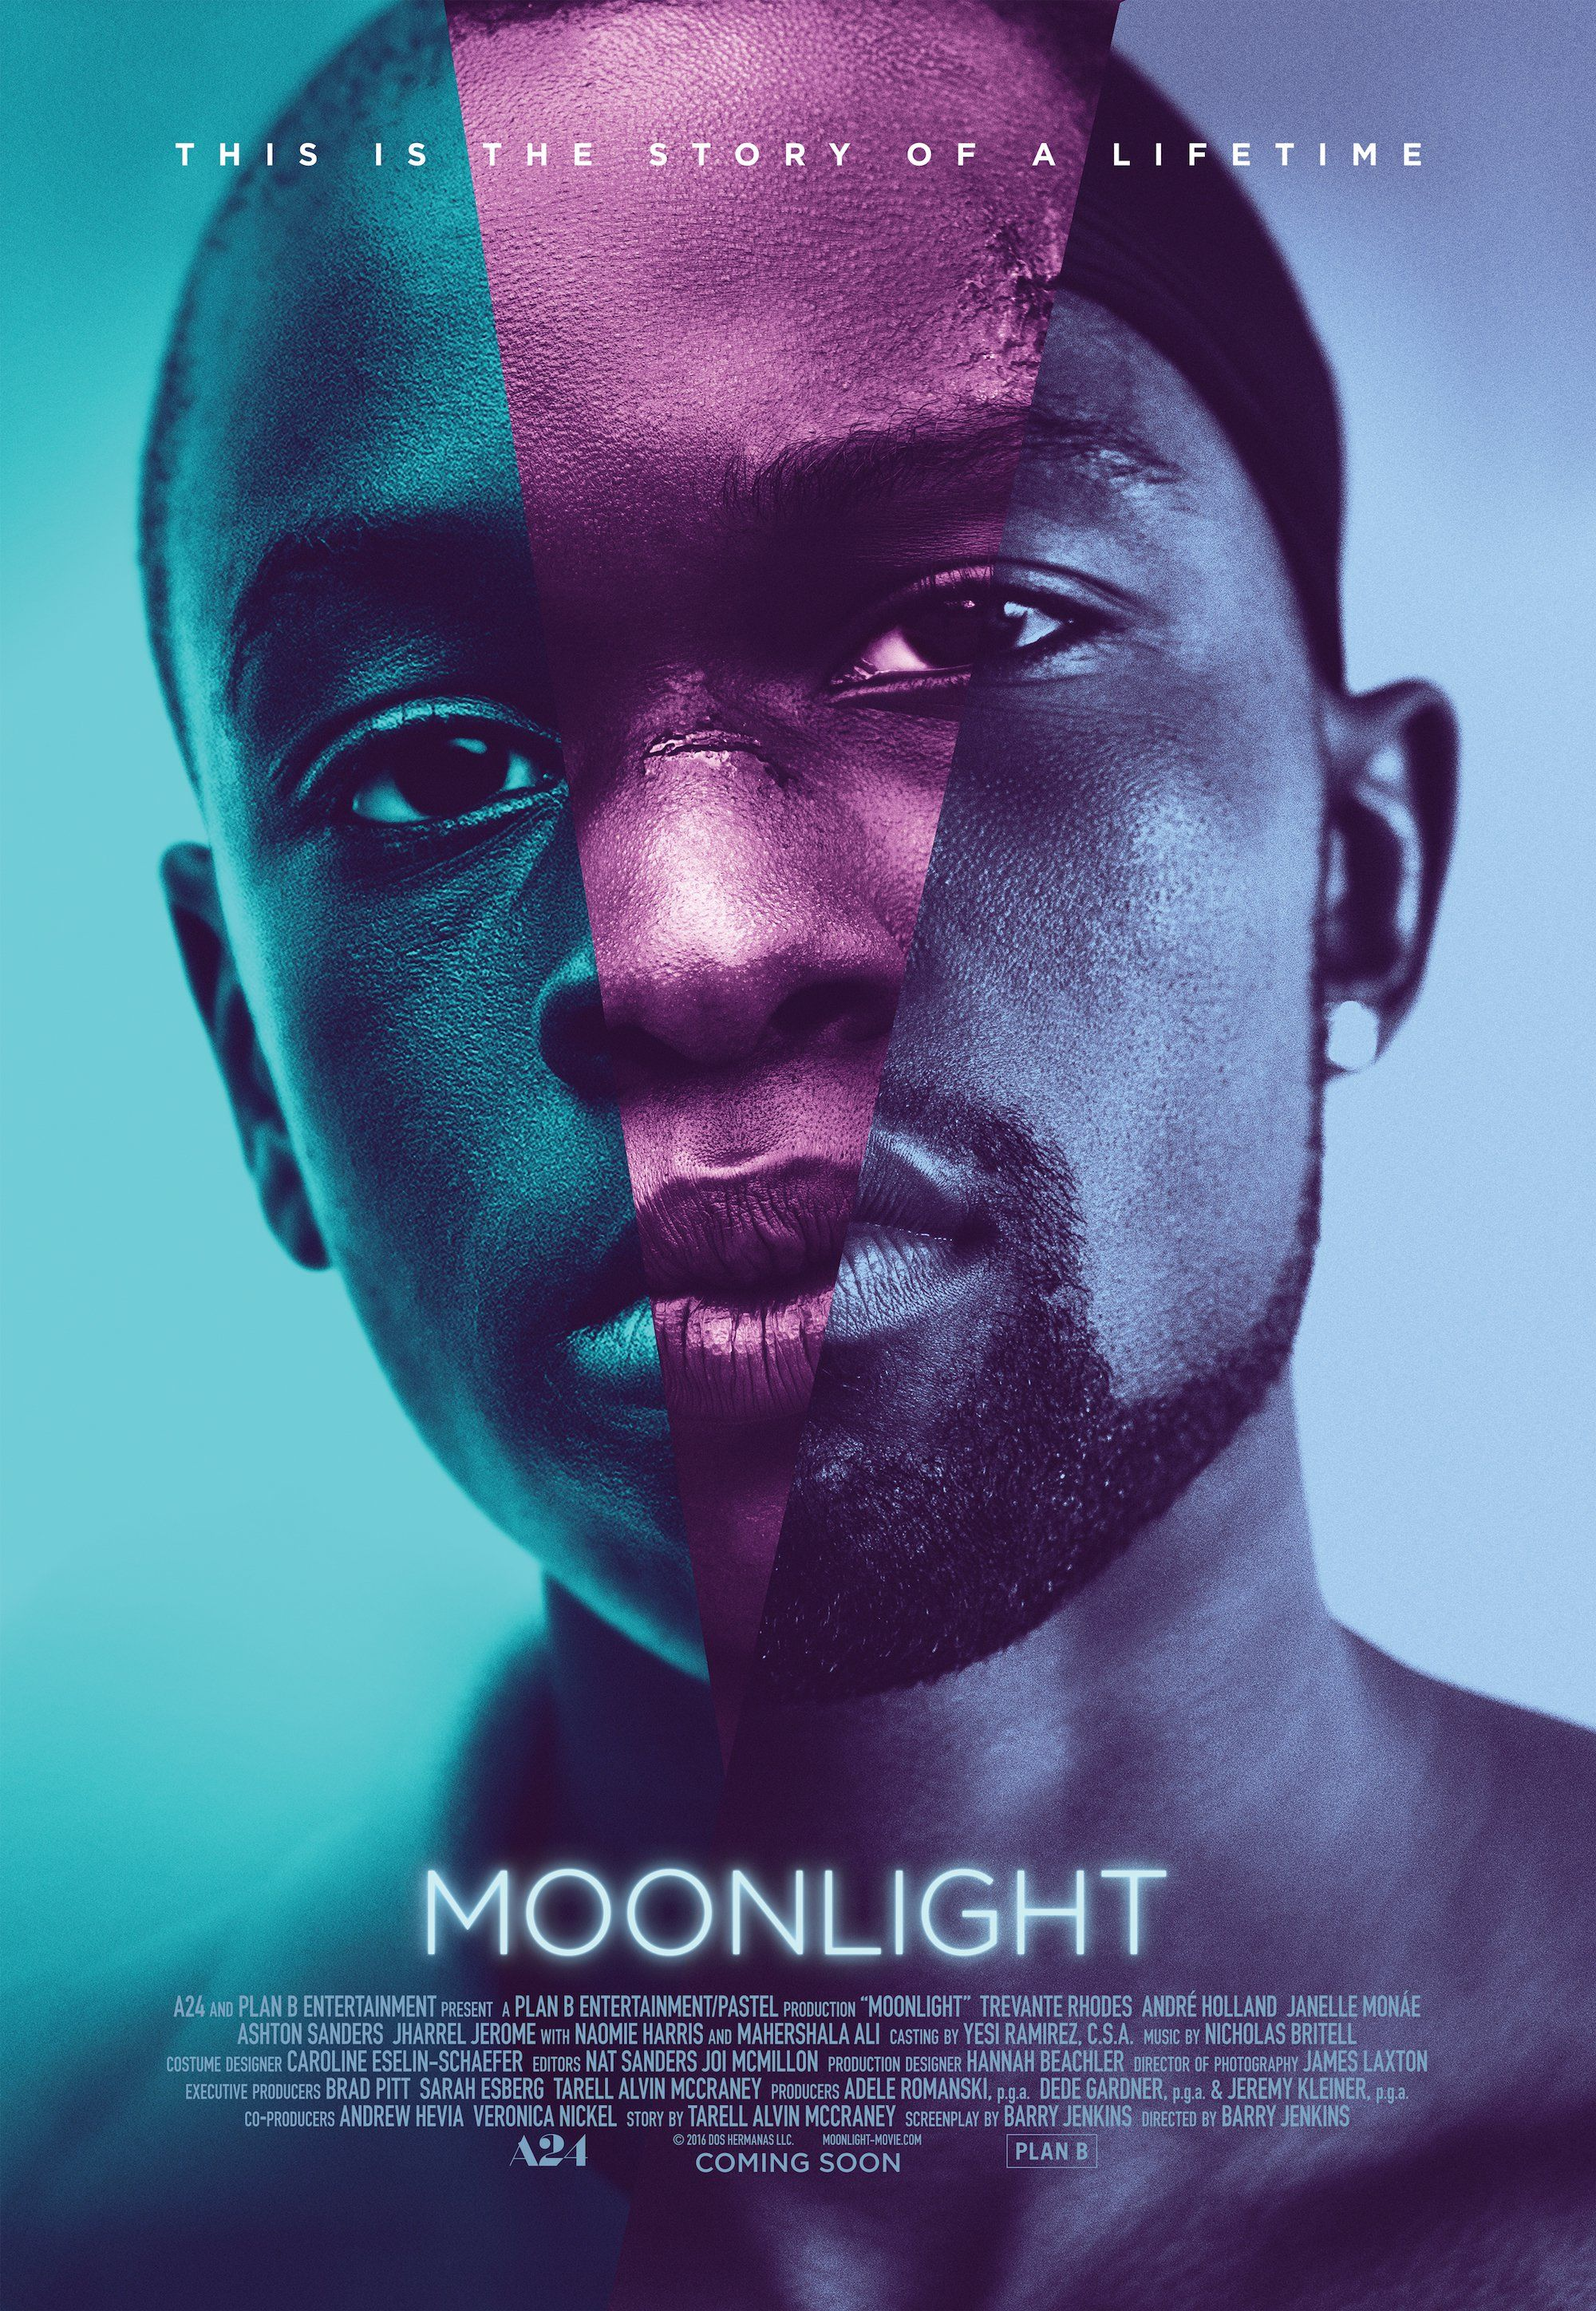 Watch Moonlight online for free | CineRill